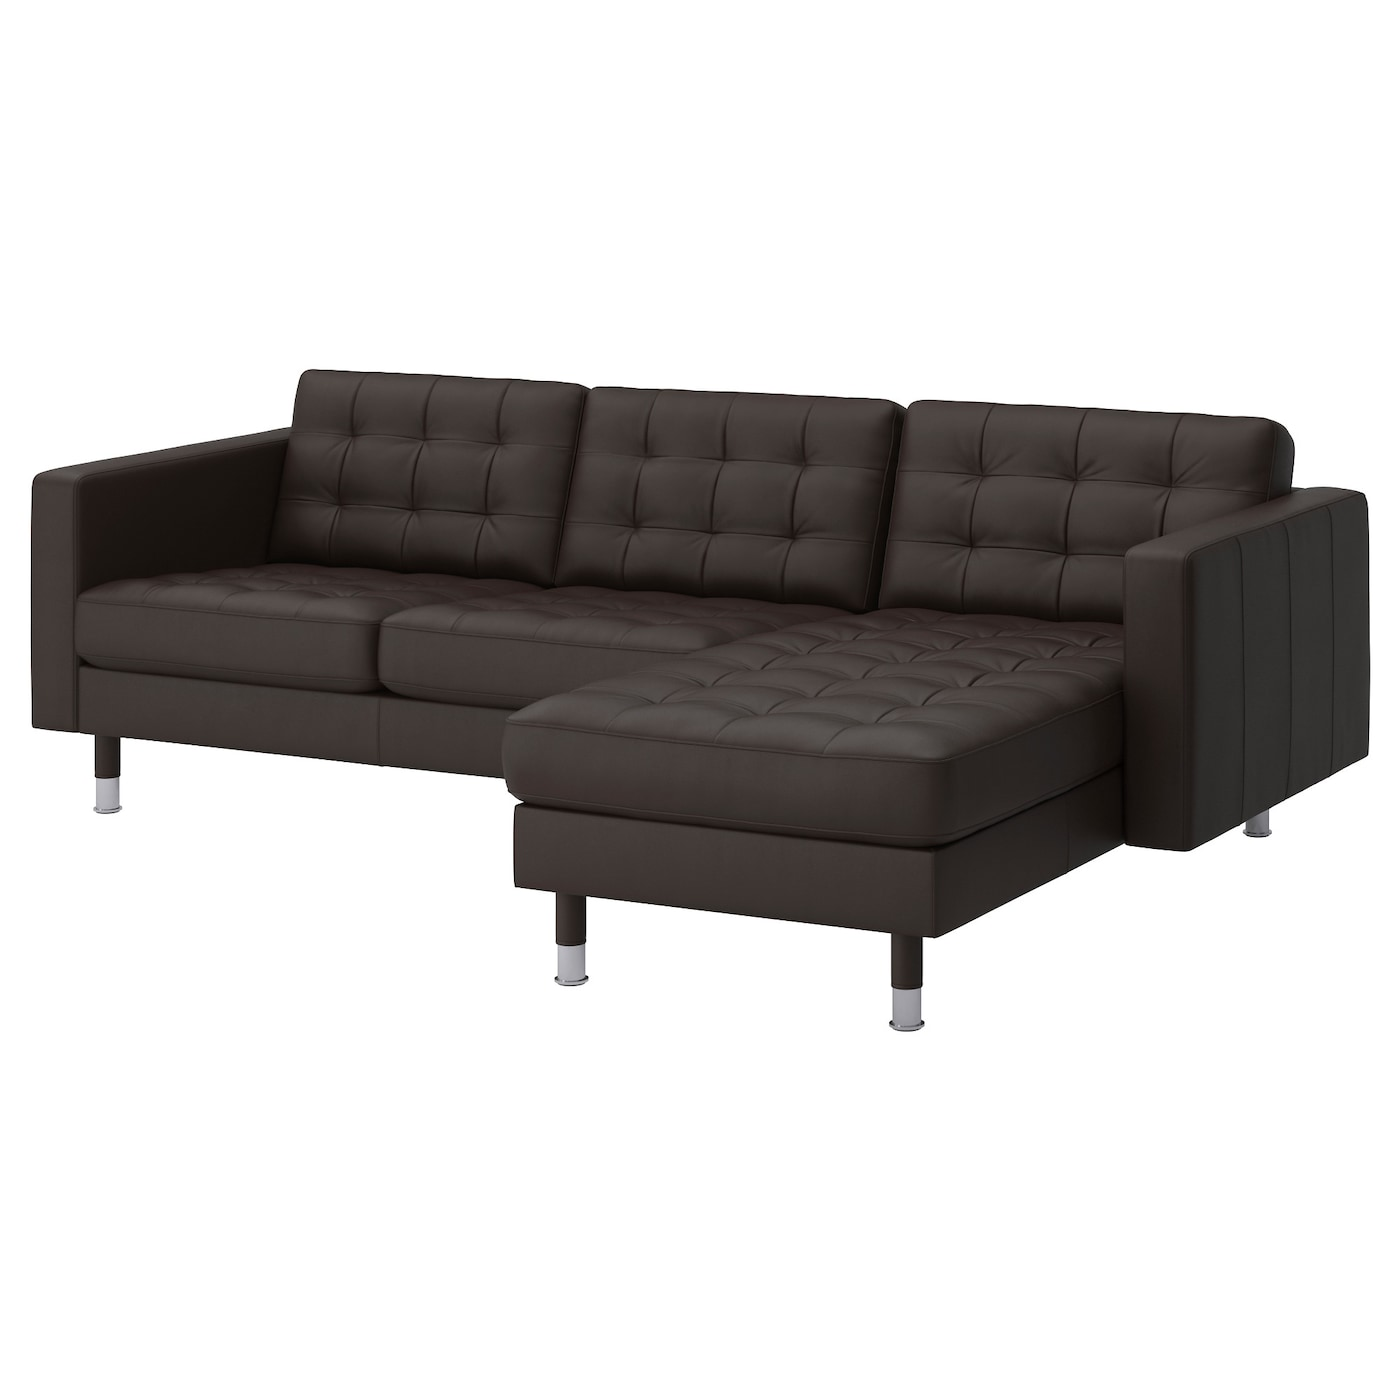 Excellent Ikea Leather Sofa Barn Sofa Inzonedesignstudio Interior Chair Design Inzonedesignstudiocom